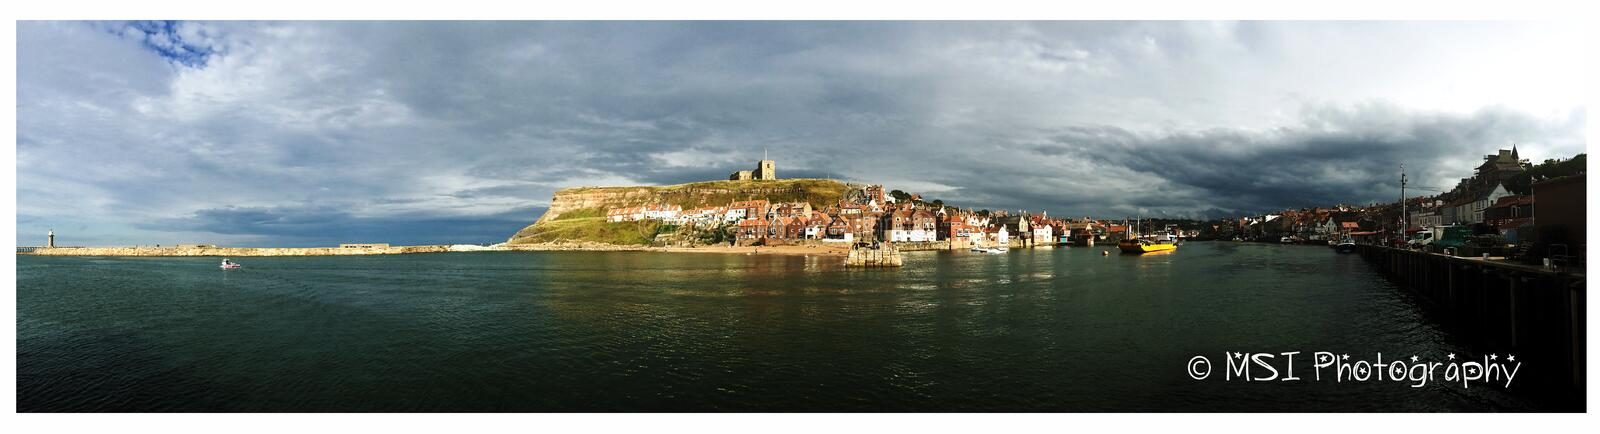 Whitby, north Yorkshire. Whitby, on the river Esk. north Yorkshire royalty free stock photo